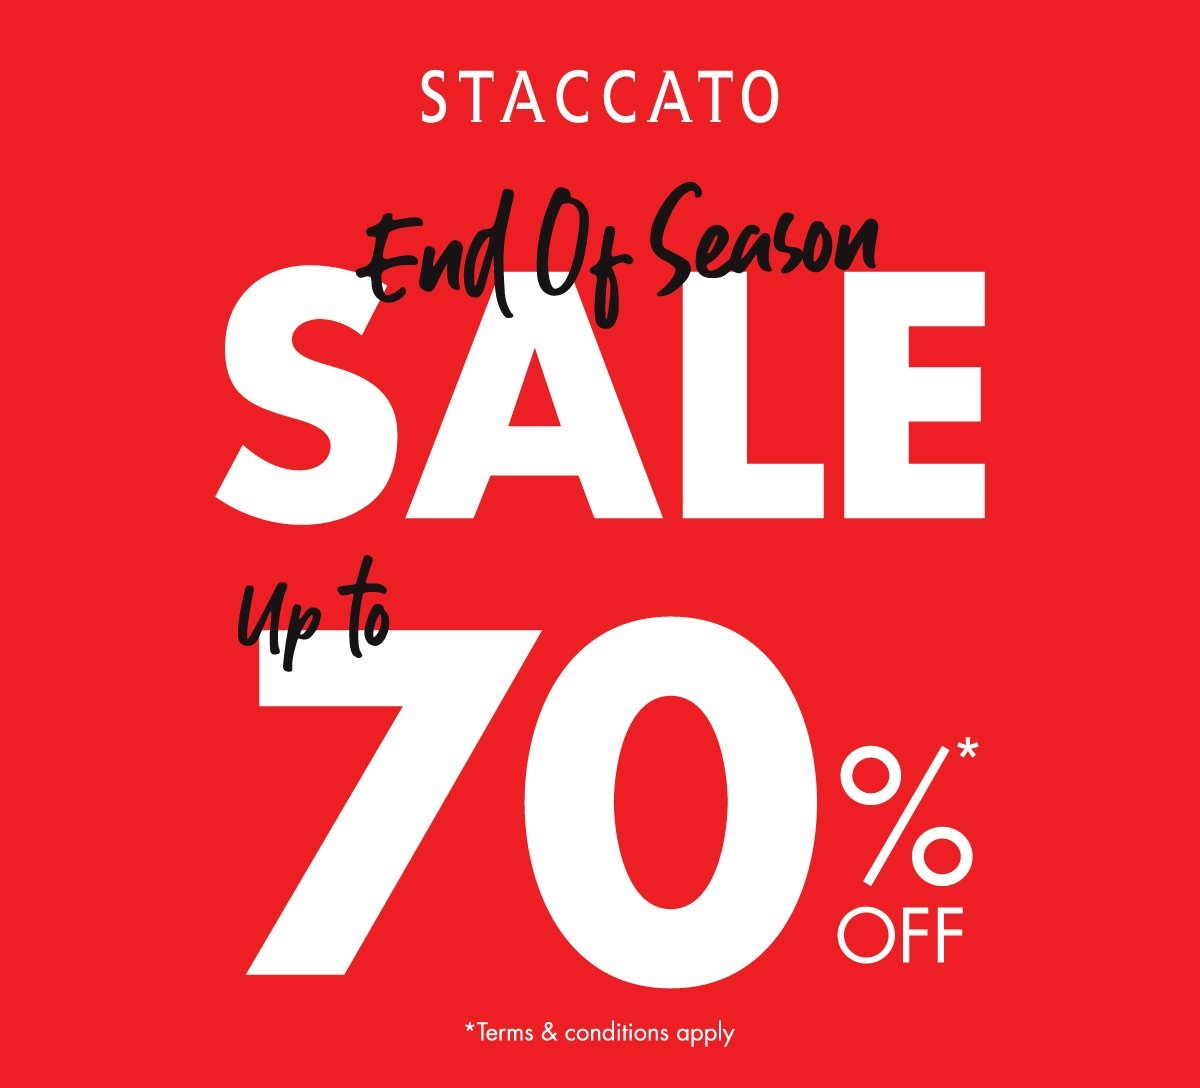 Staccato Promo End Of Season Sale Disc Up To 70% Off